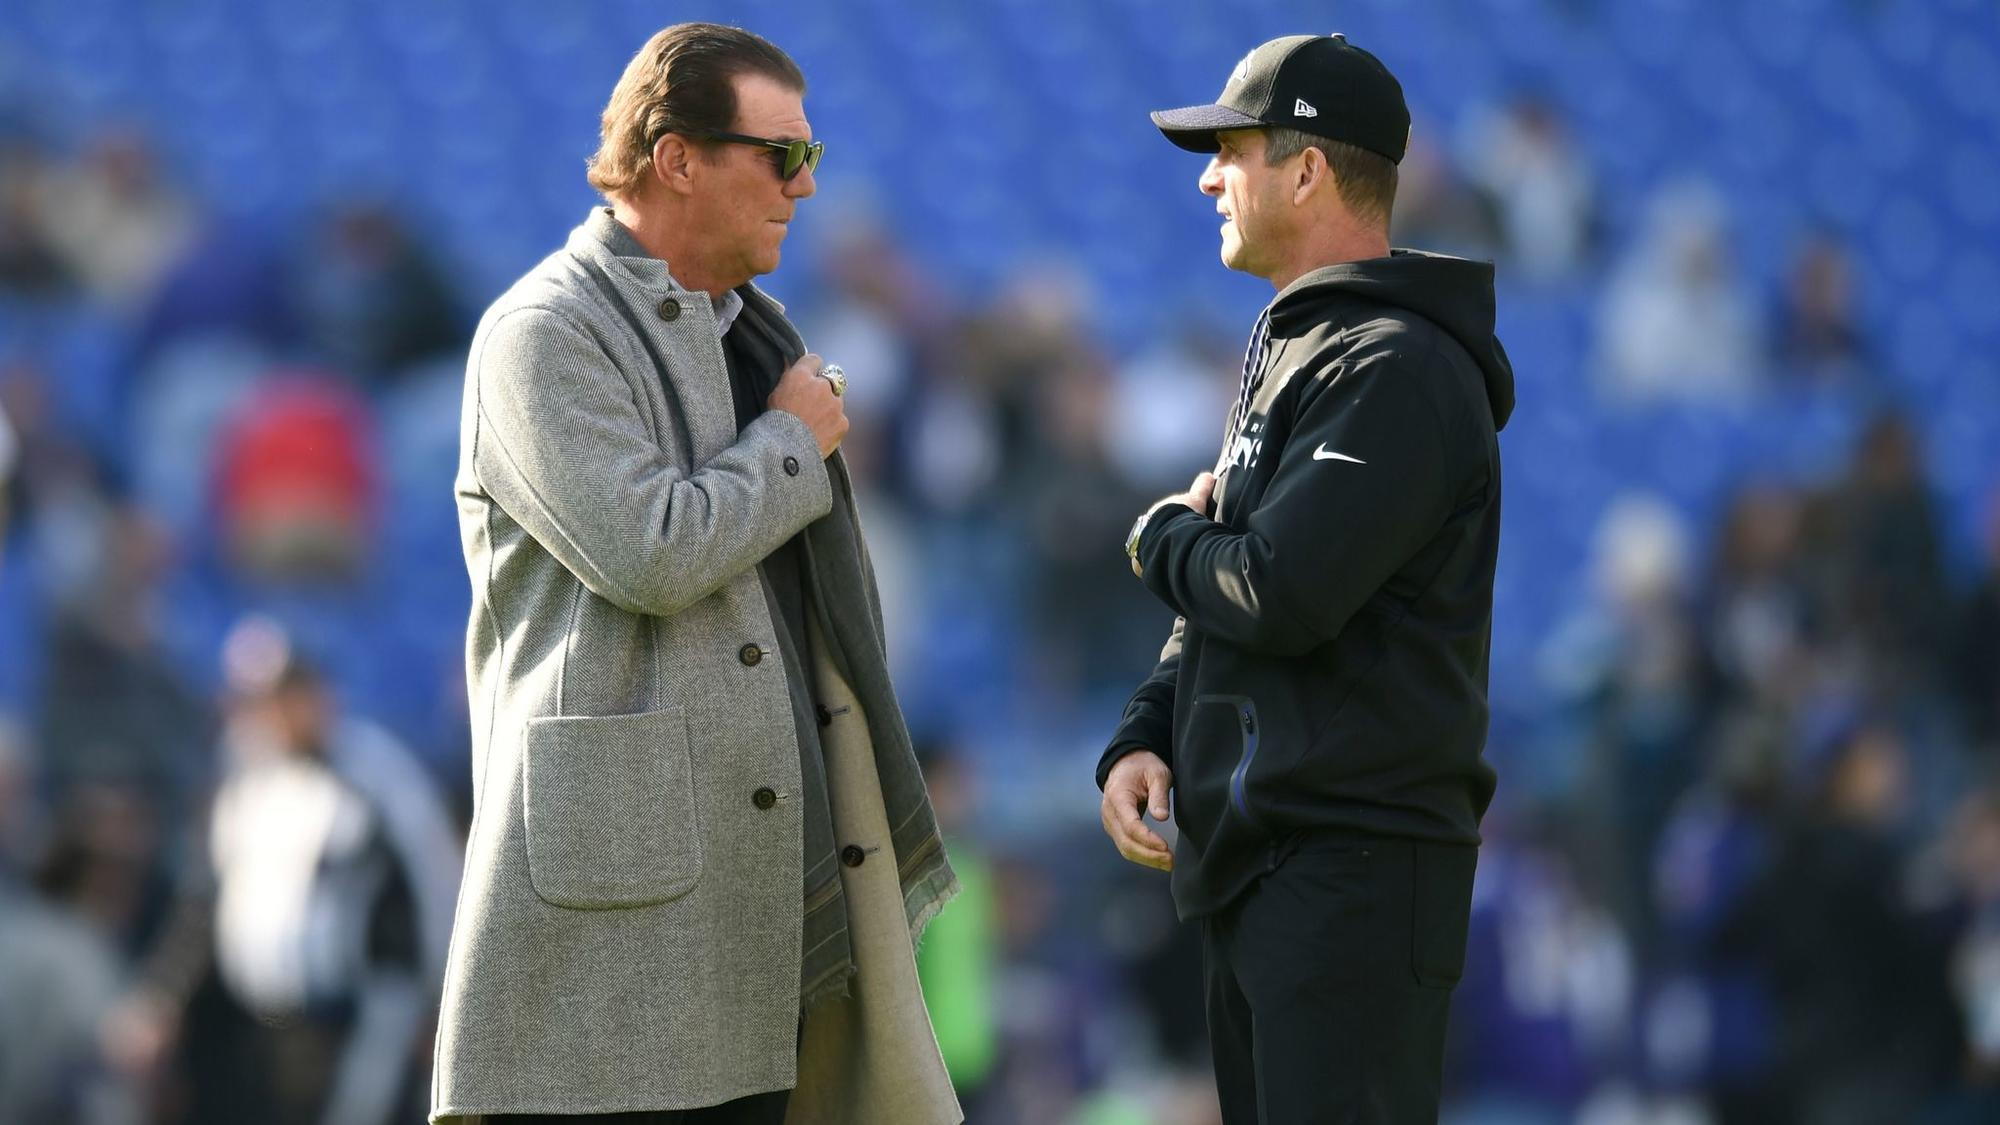 Bs-sp-ravens-bisciotti-summit-20180116